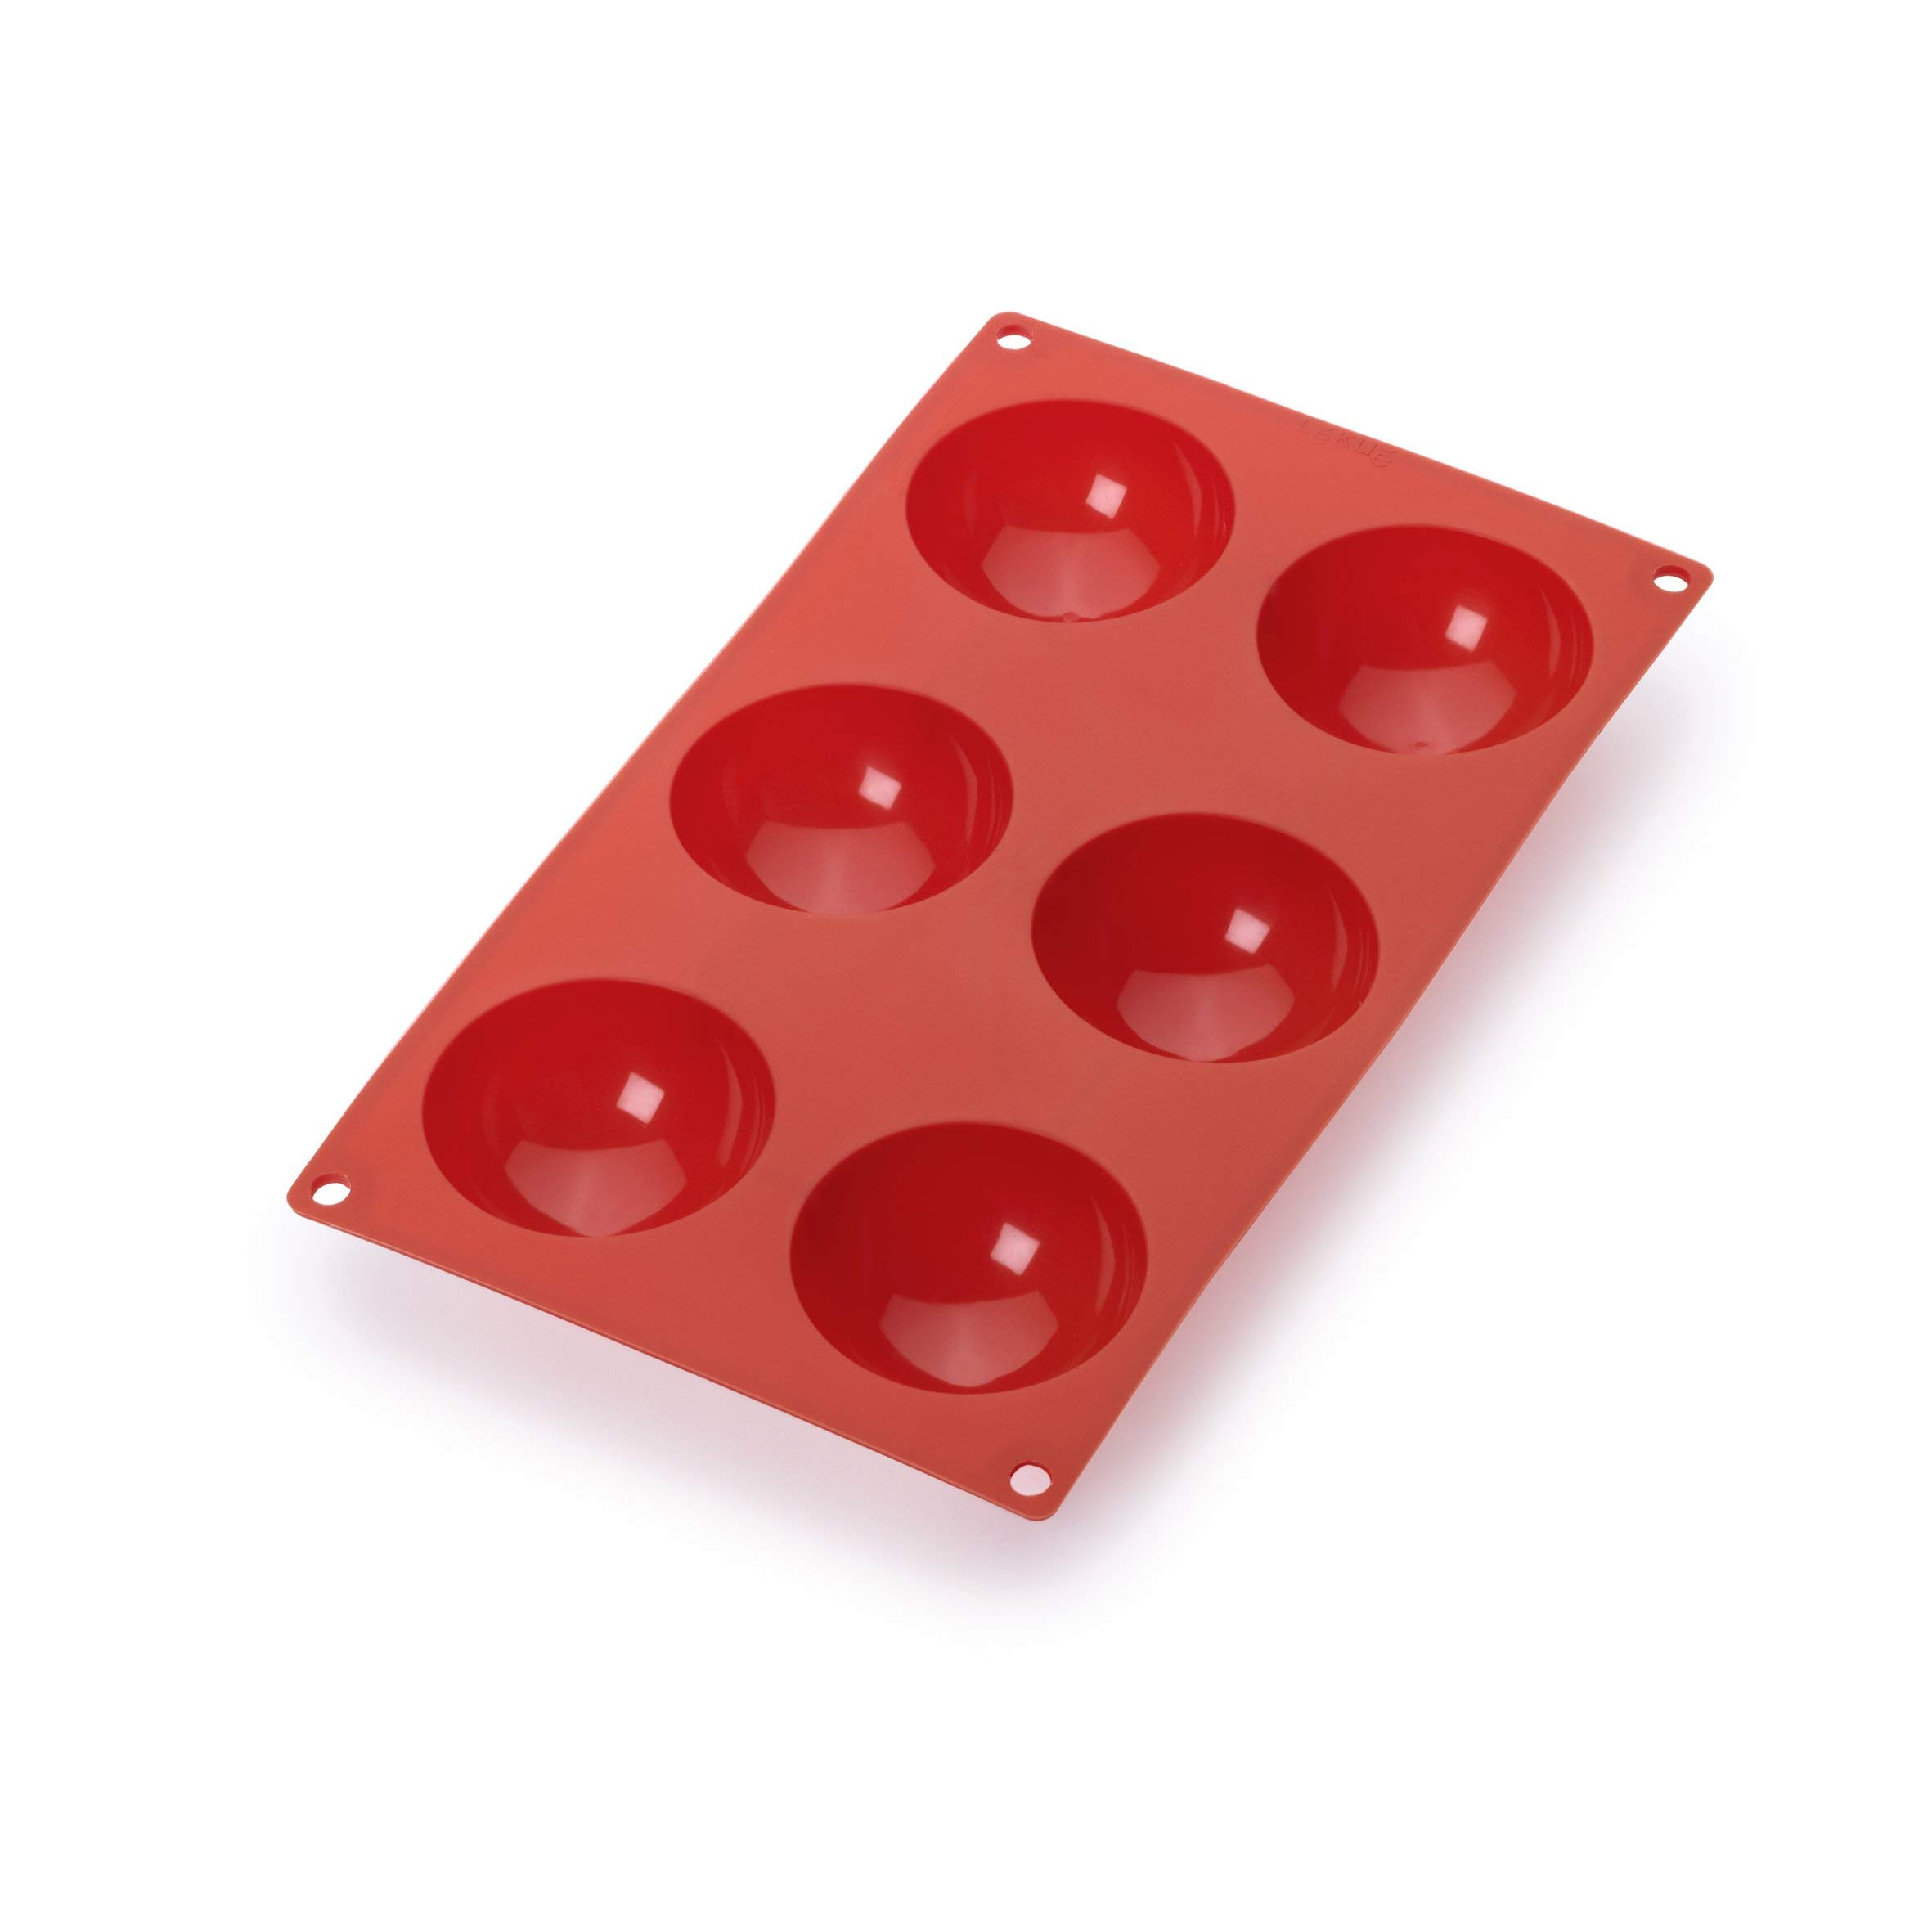 Lekue 6 Cavities Semi-Sphere Multi Cavity Baking Mold, Red by Lekue